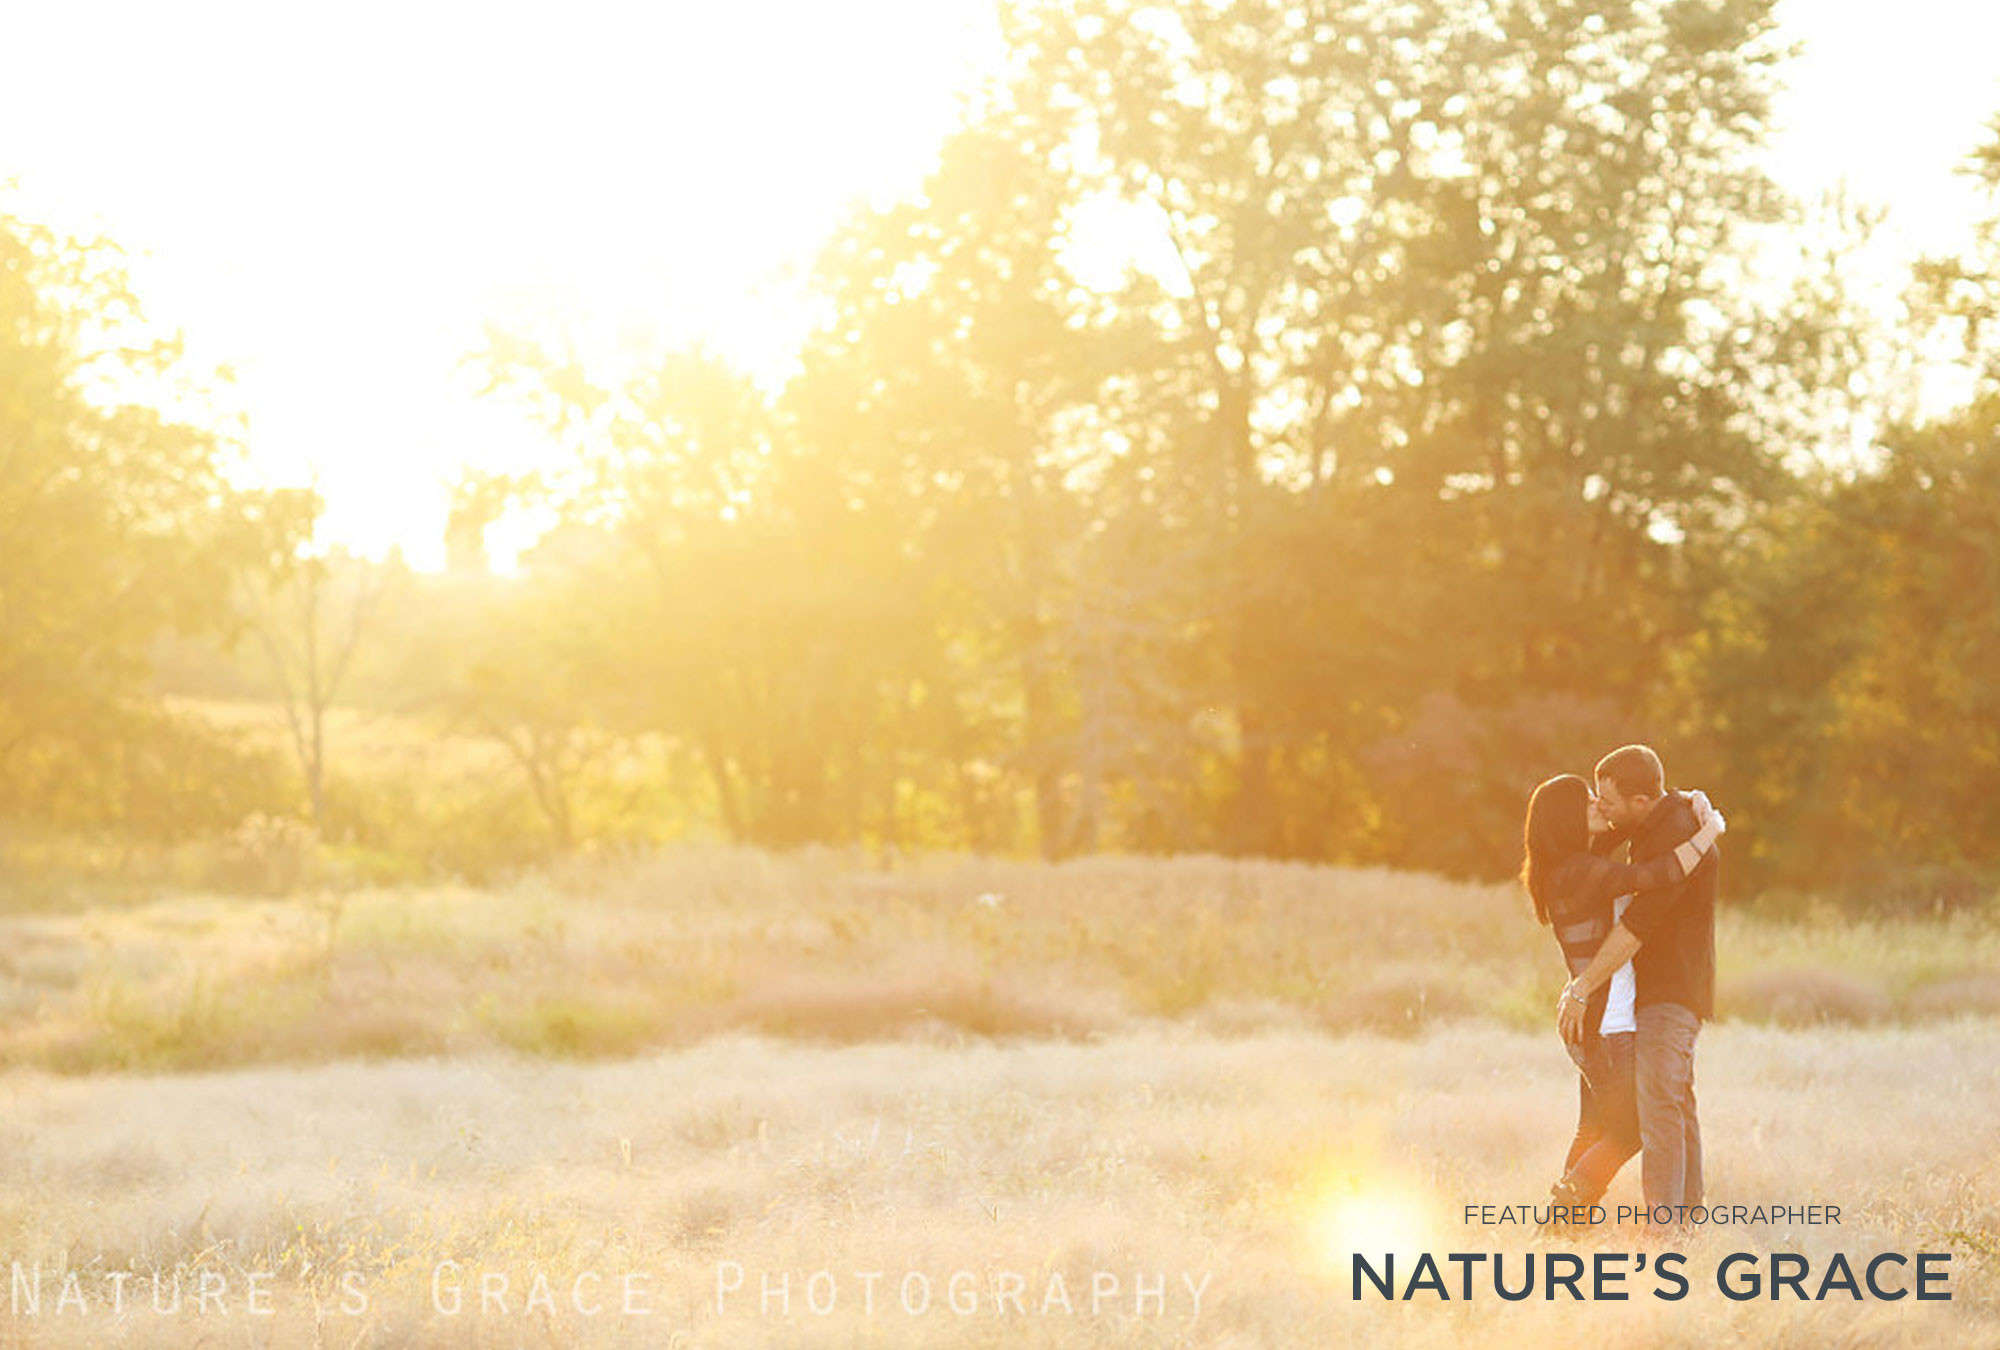 Nature's Grace - Featured Photographer